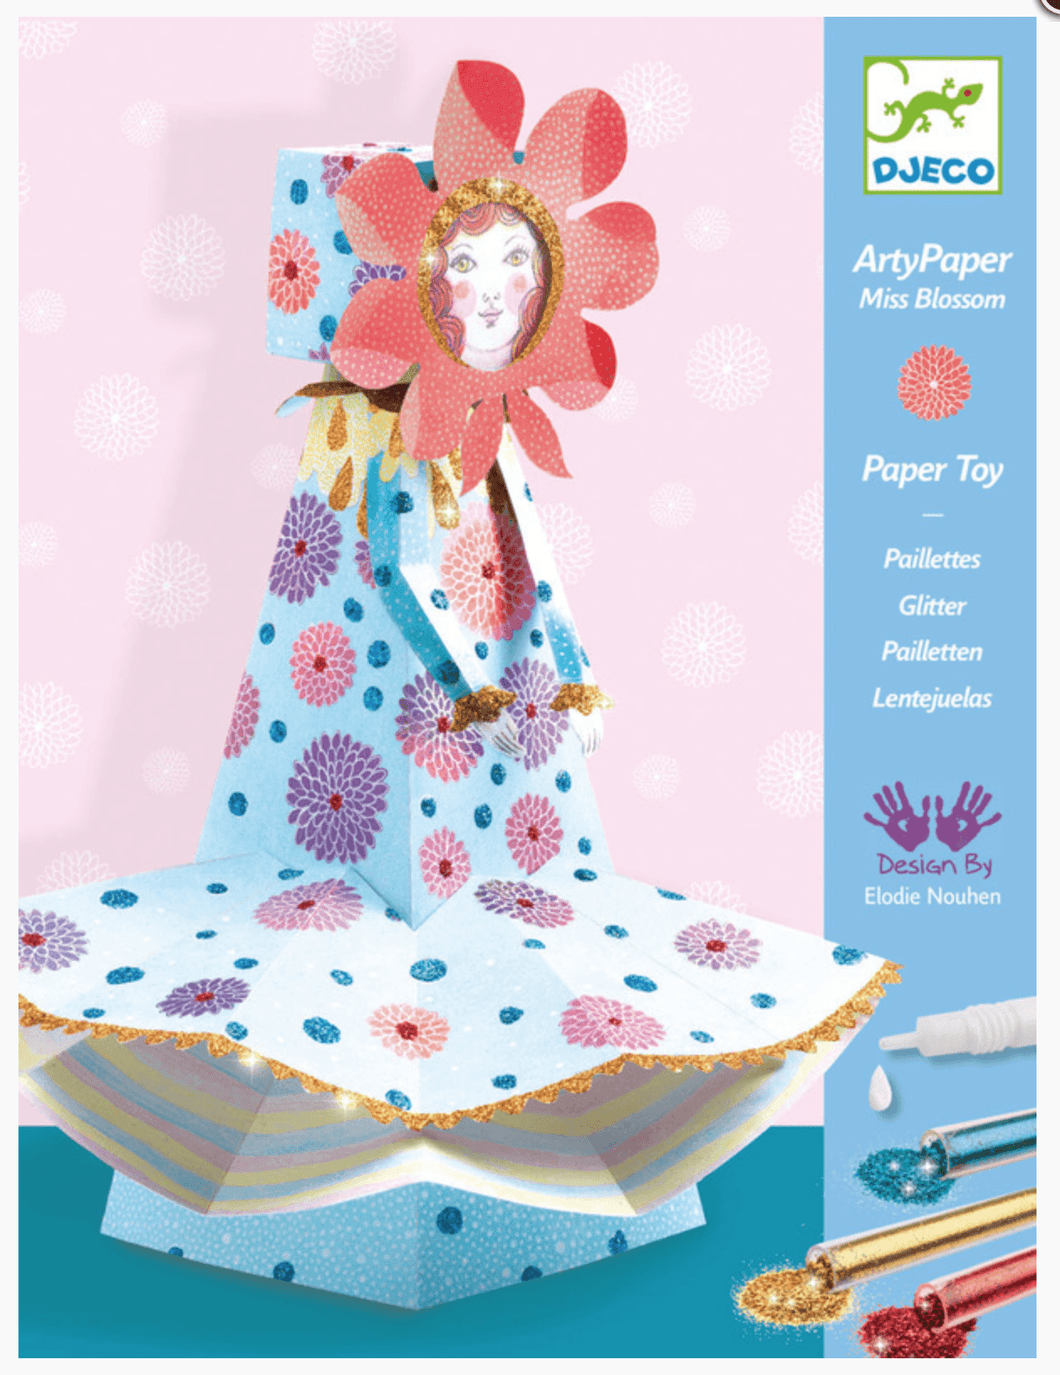 Djeco Miss Blossom Arty Paper